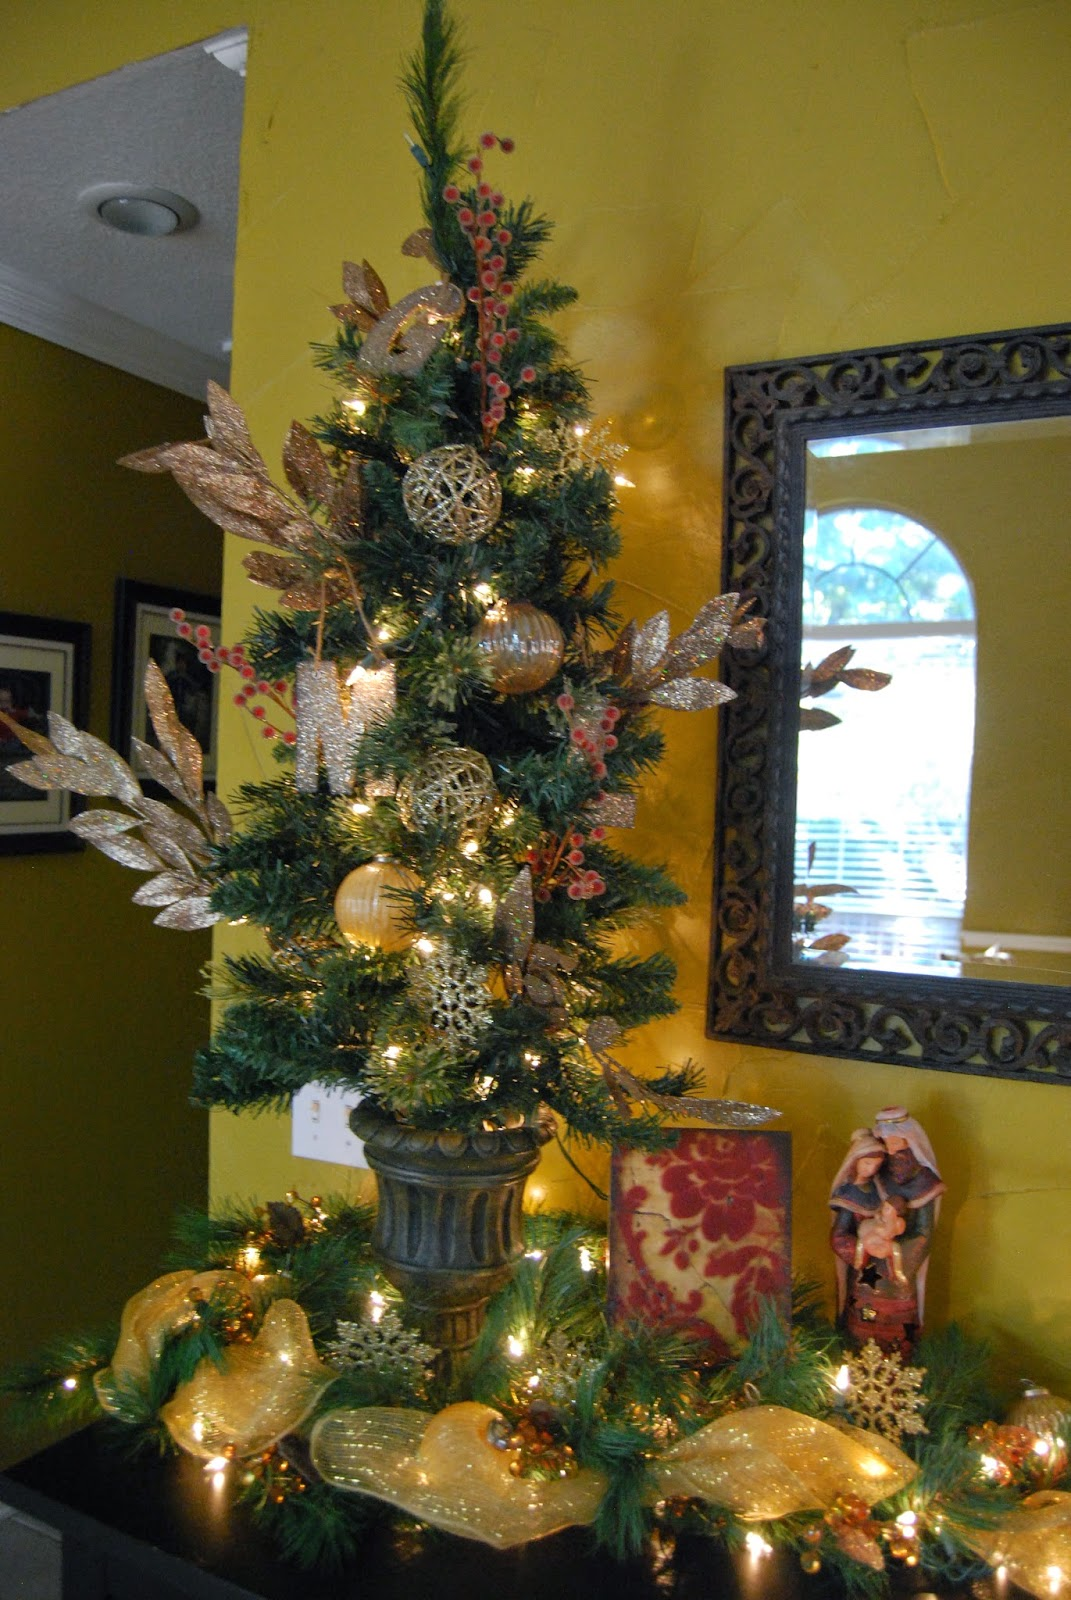 Christmas decorations 2014 - The Little Tree On Our Front Hall Buffet Table Has Our Glitter Ornaments From Pottery Barn With Everyone S Initials